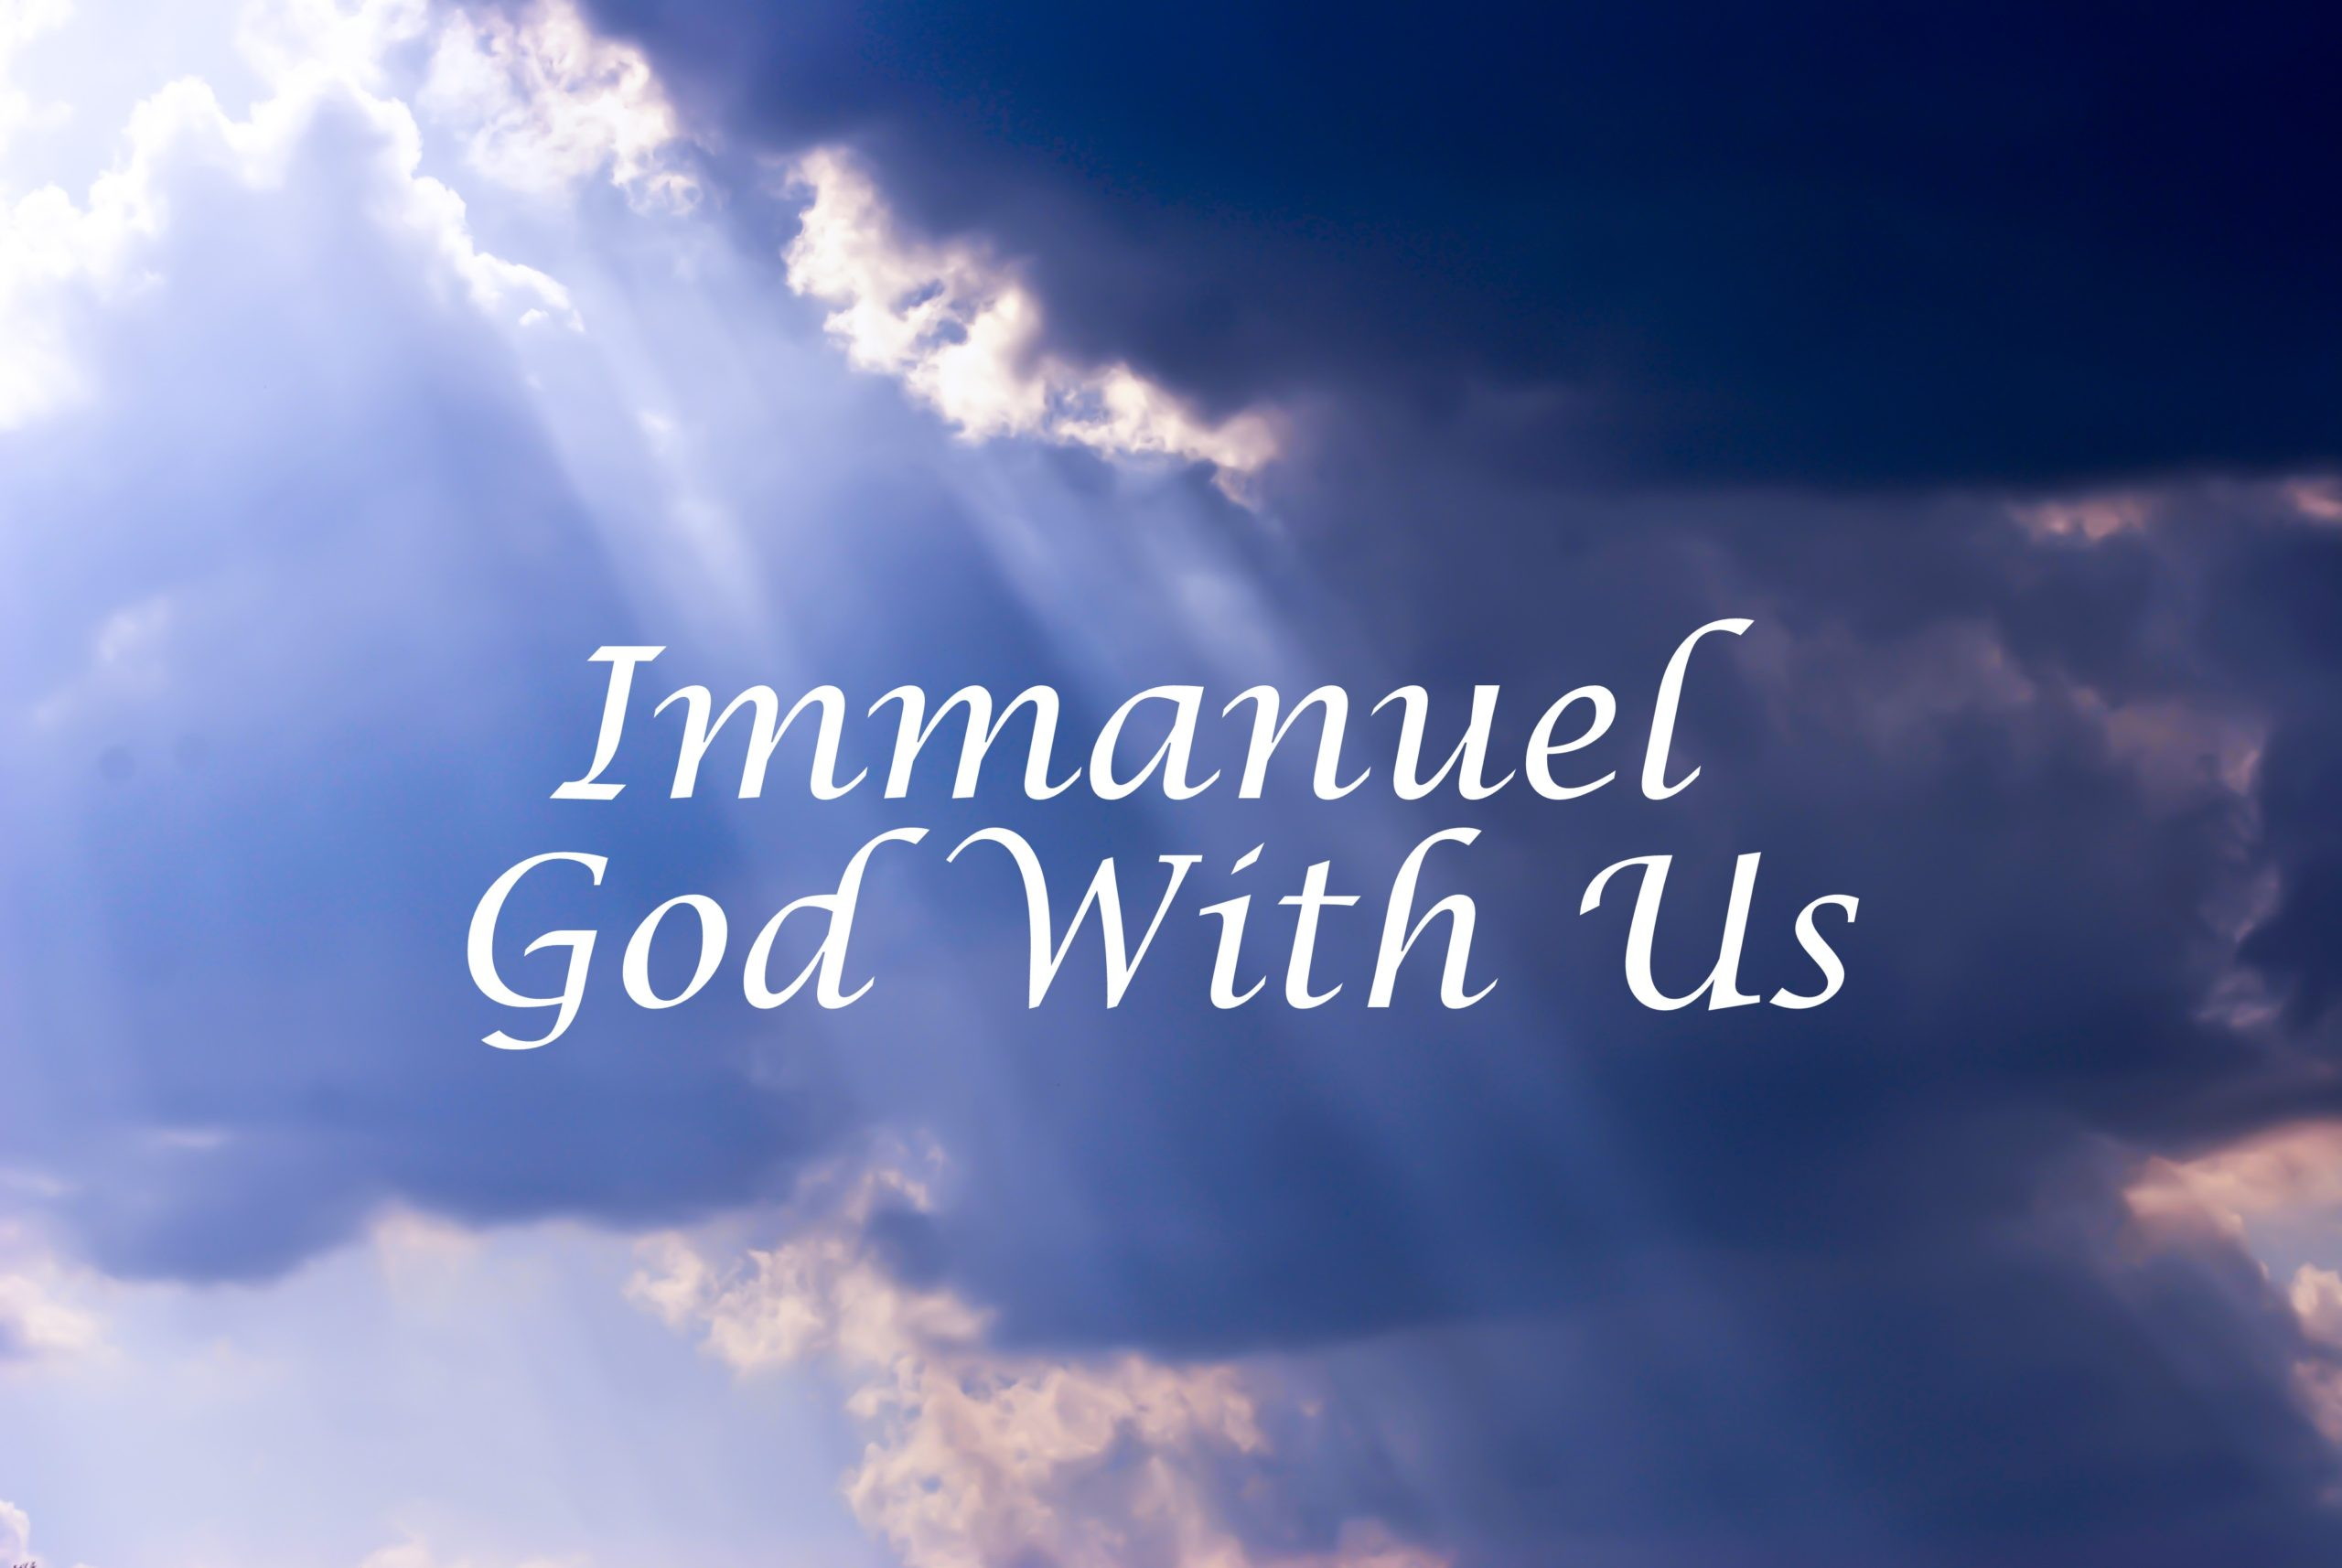 Immanuel, God with us